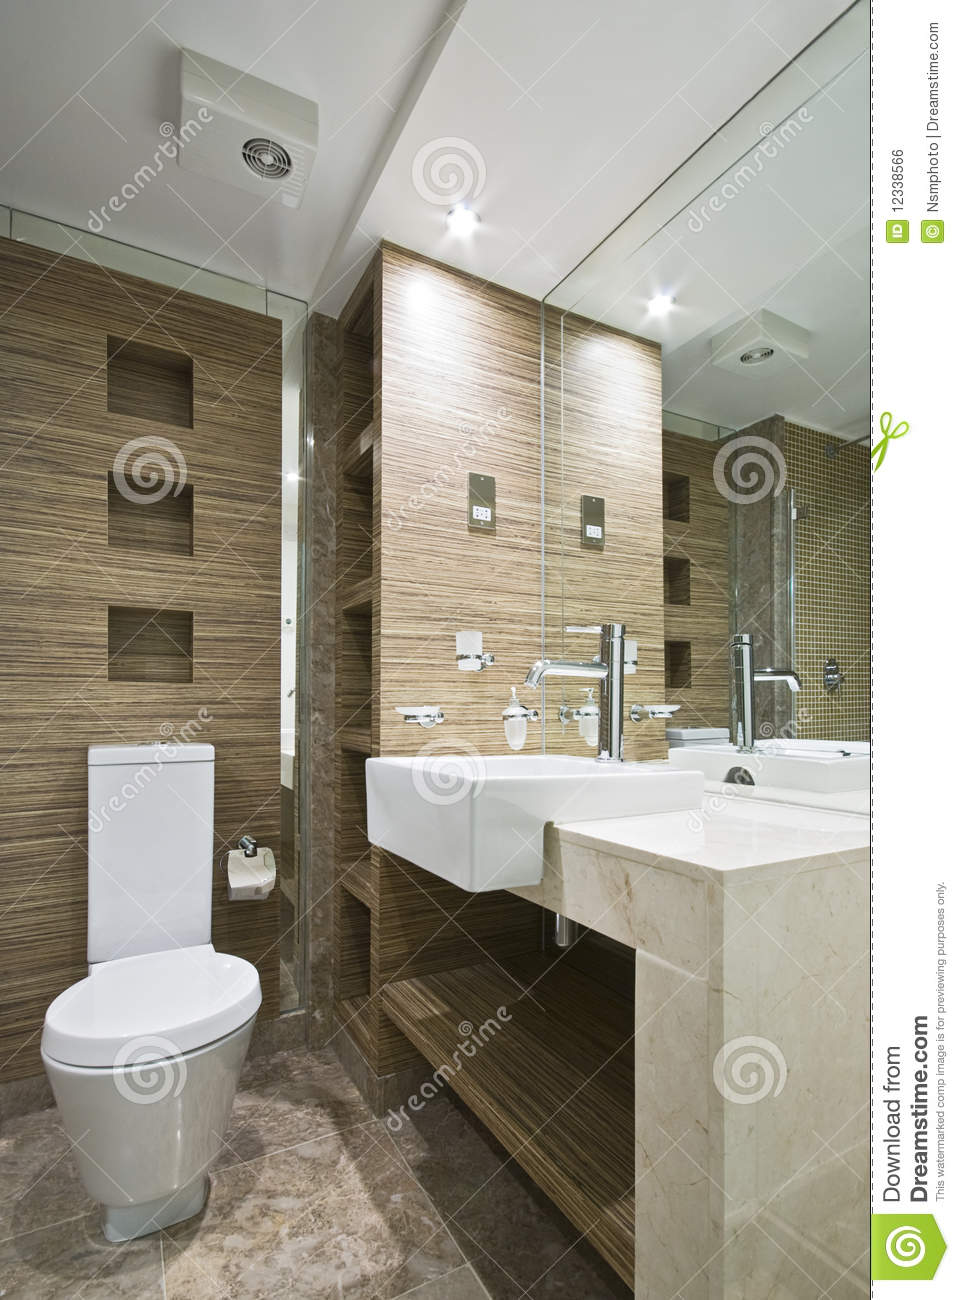 Marble Bathroom With Mosaic Tiles Royalty Free Stock Image